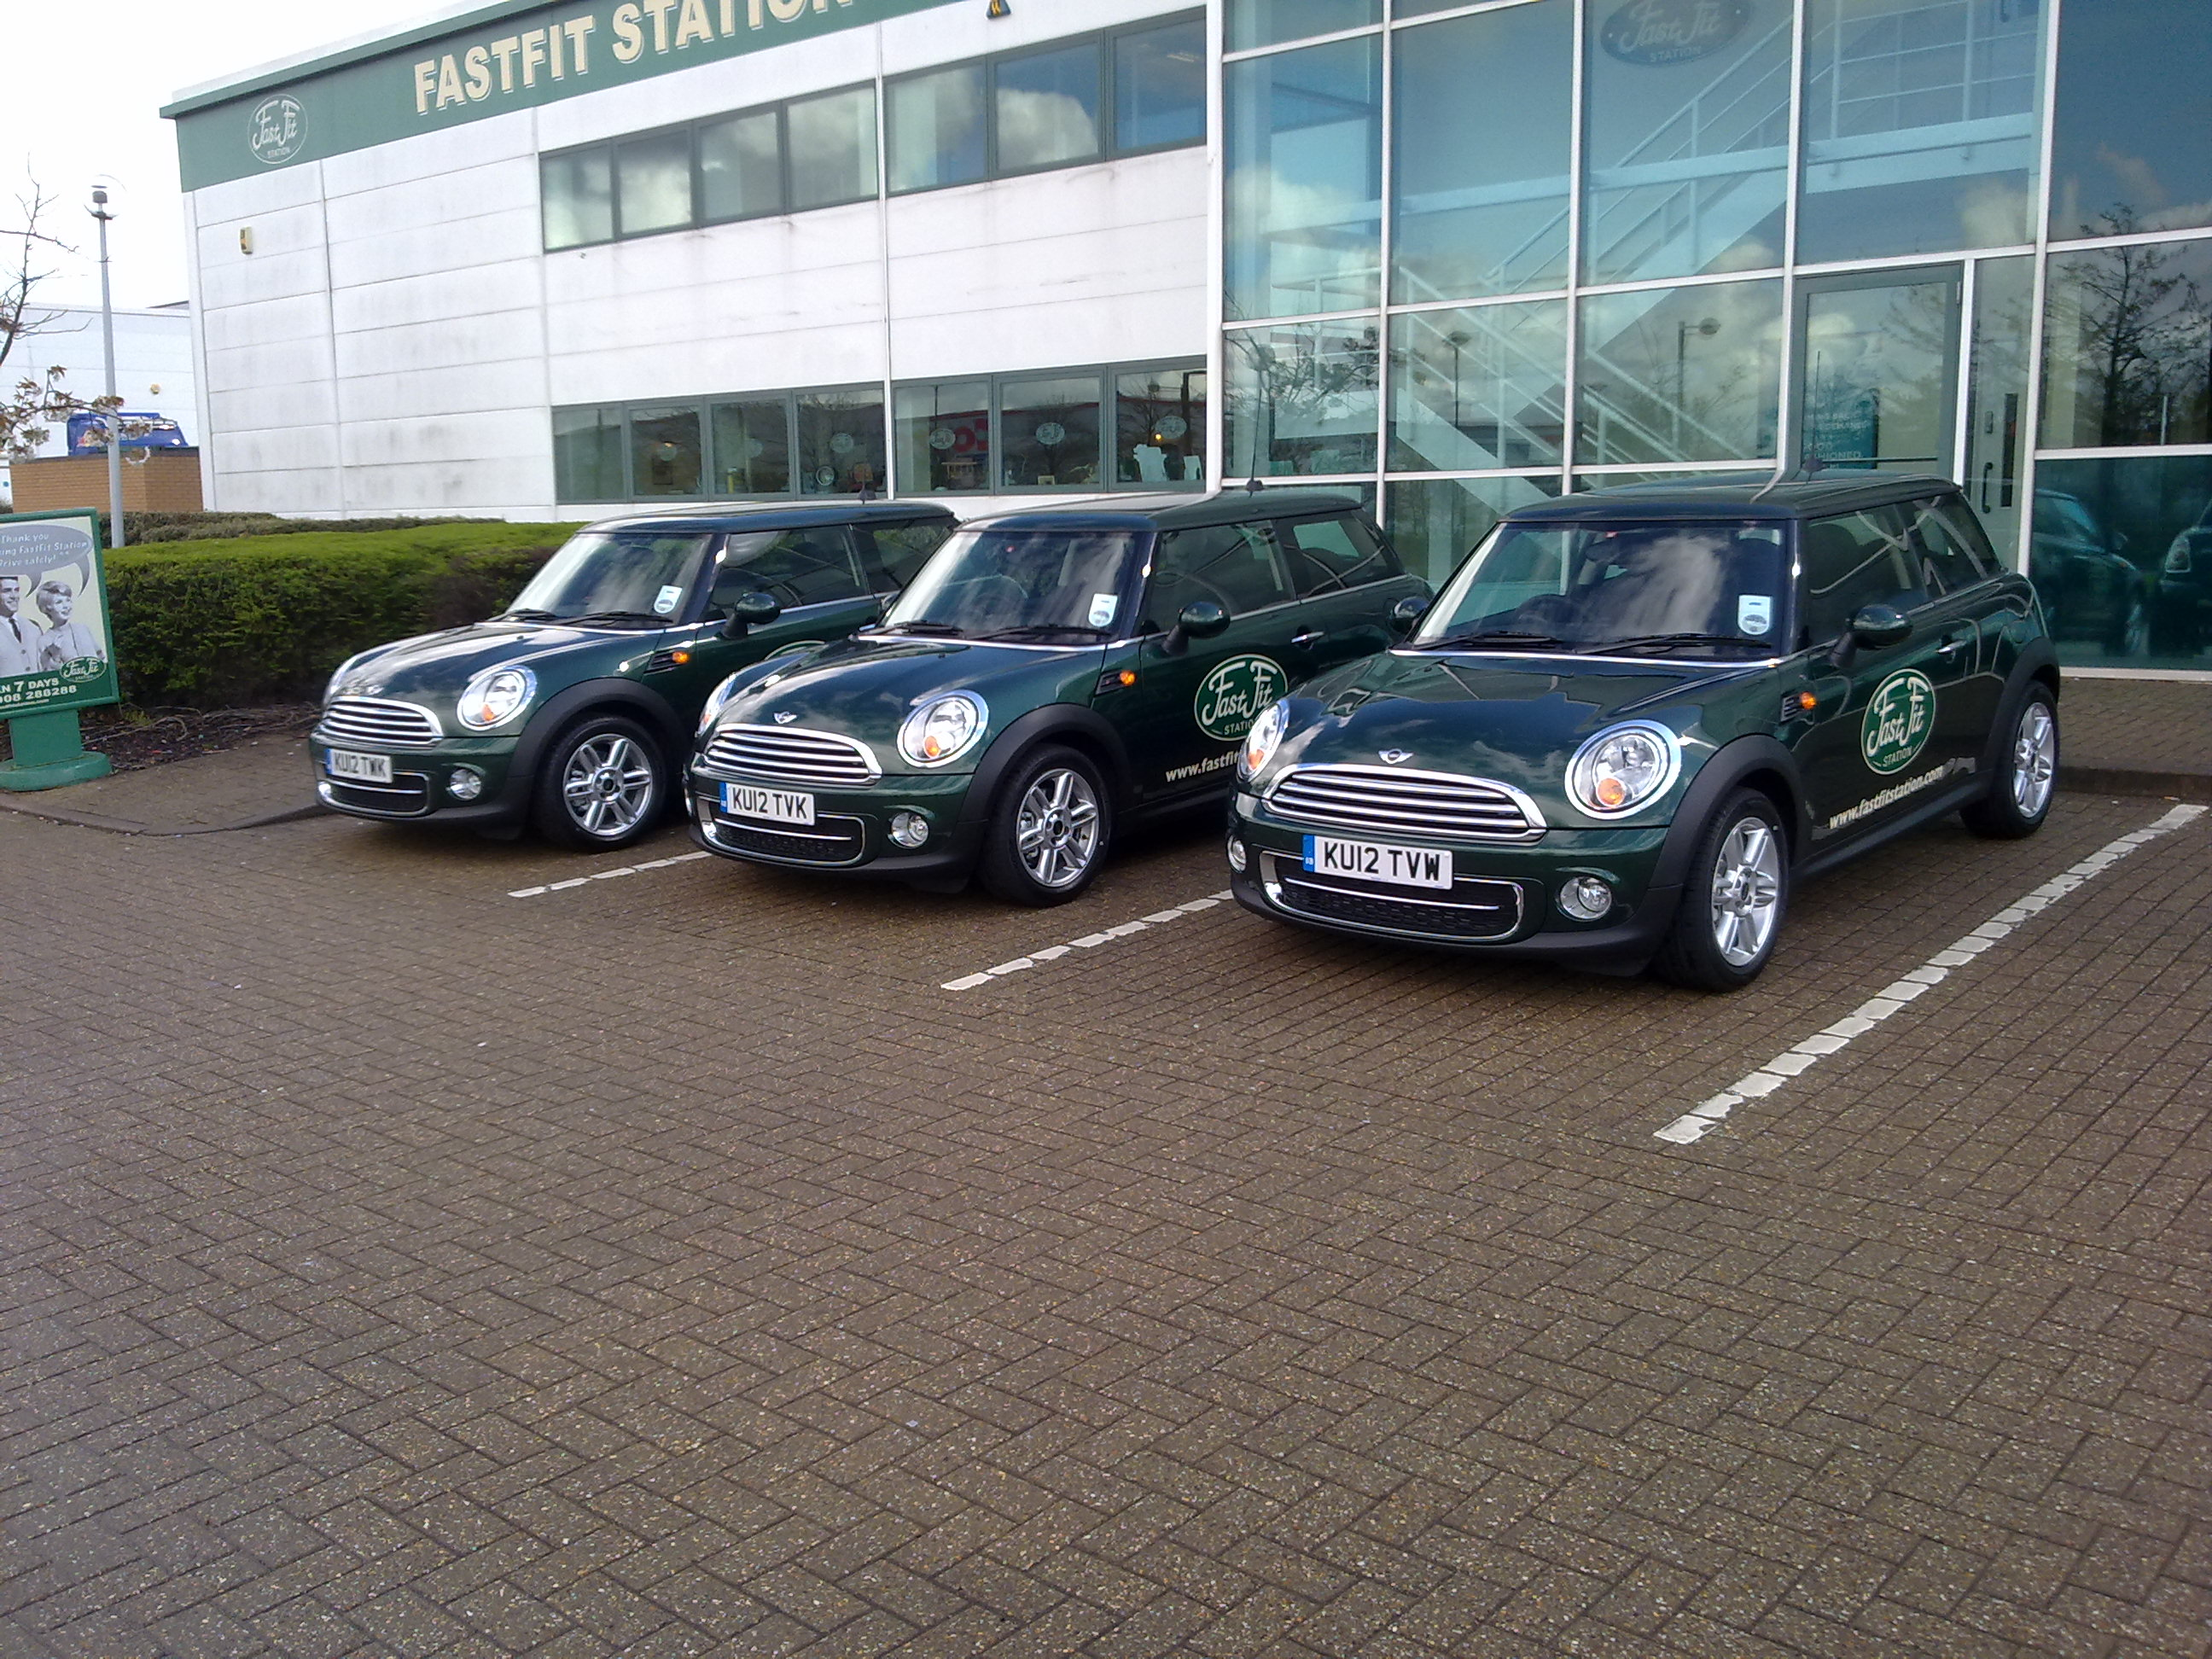 FastFit Station Mini Cooper D Courtesy Cars